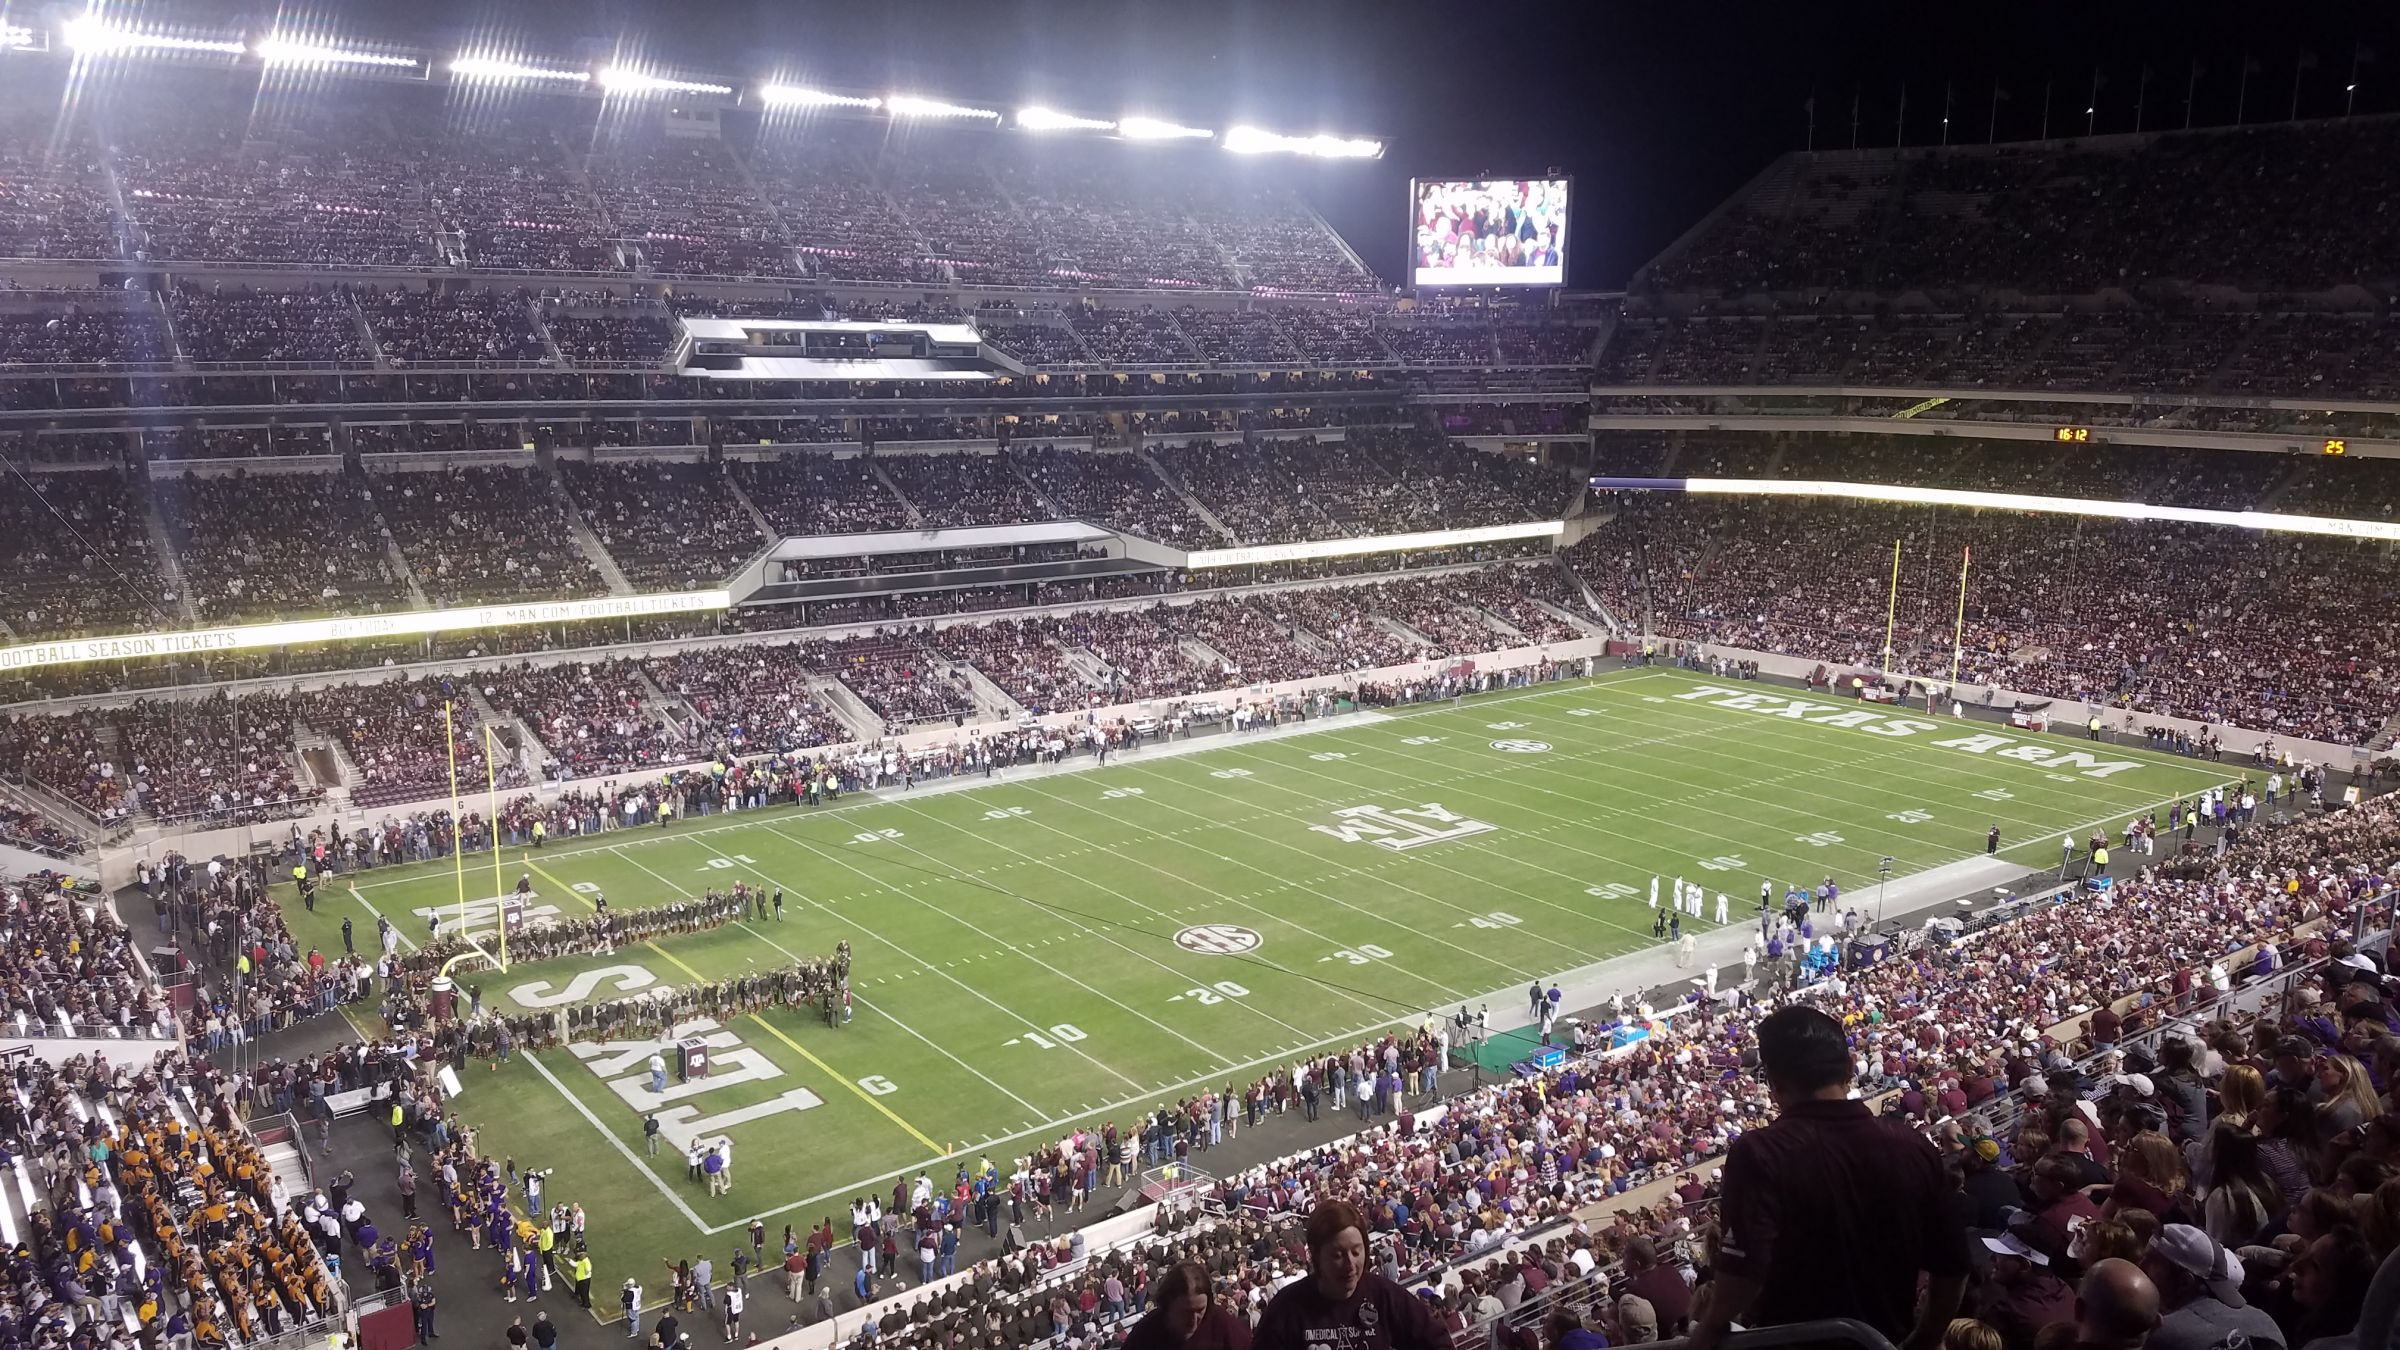 Seat View for Kyle Field Section 340, Row 14, Seat 3